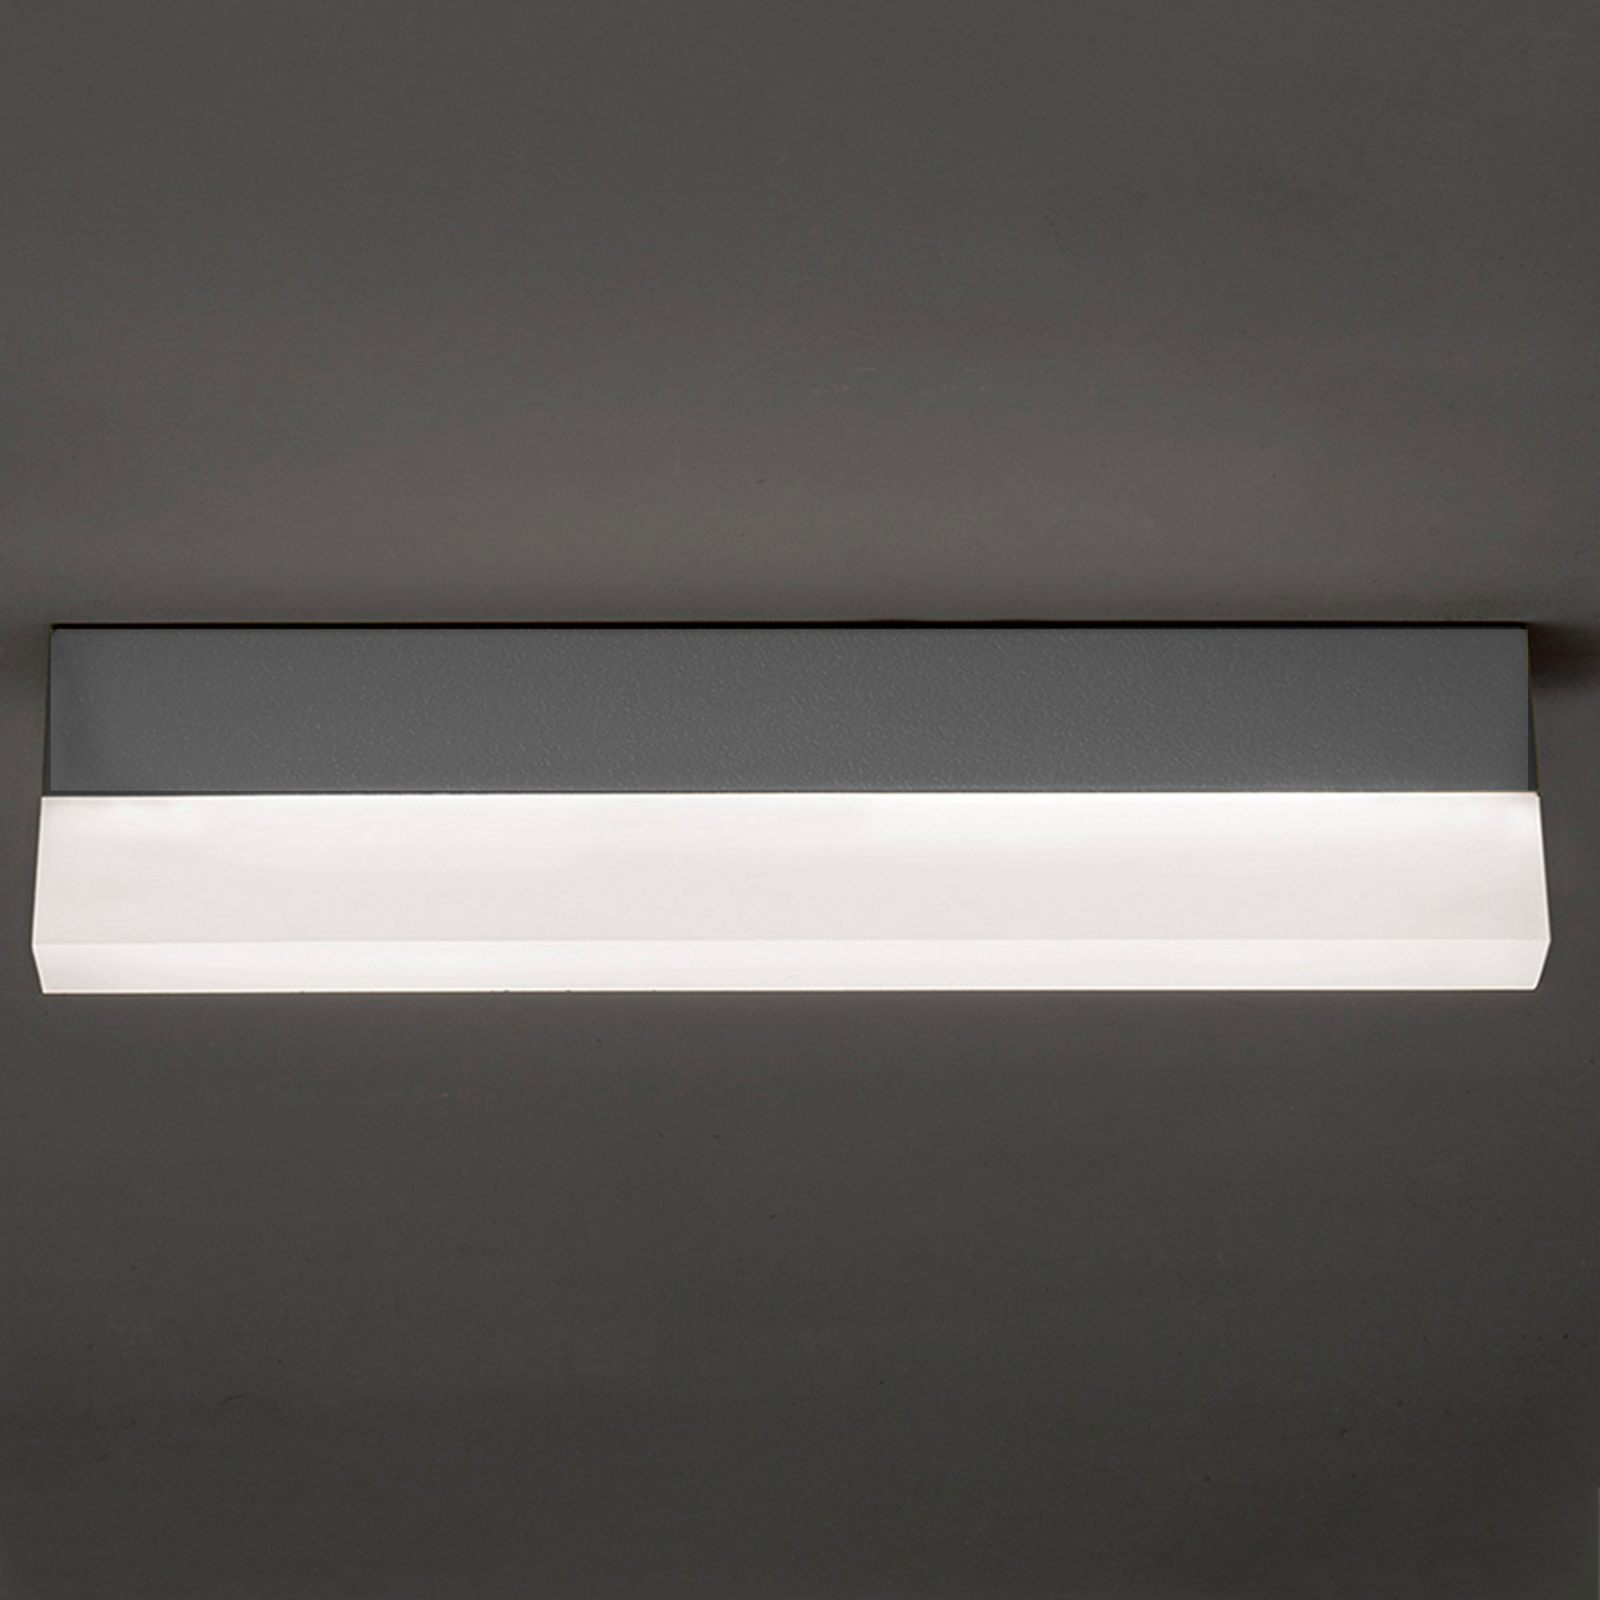 Concrete grey LED ceiling lamp Righa 28 W 3500 lm_3039194_1